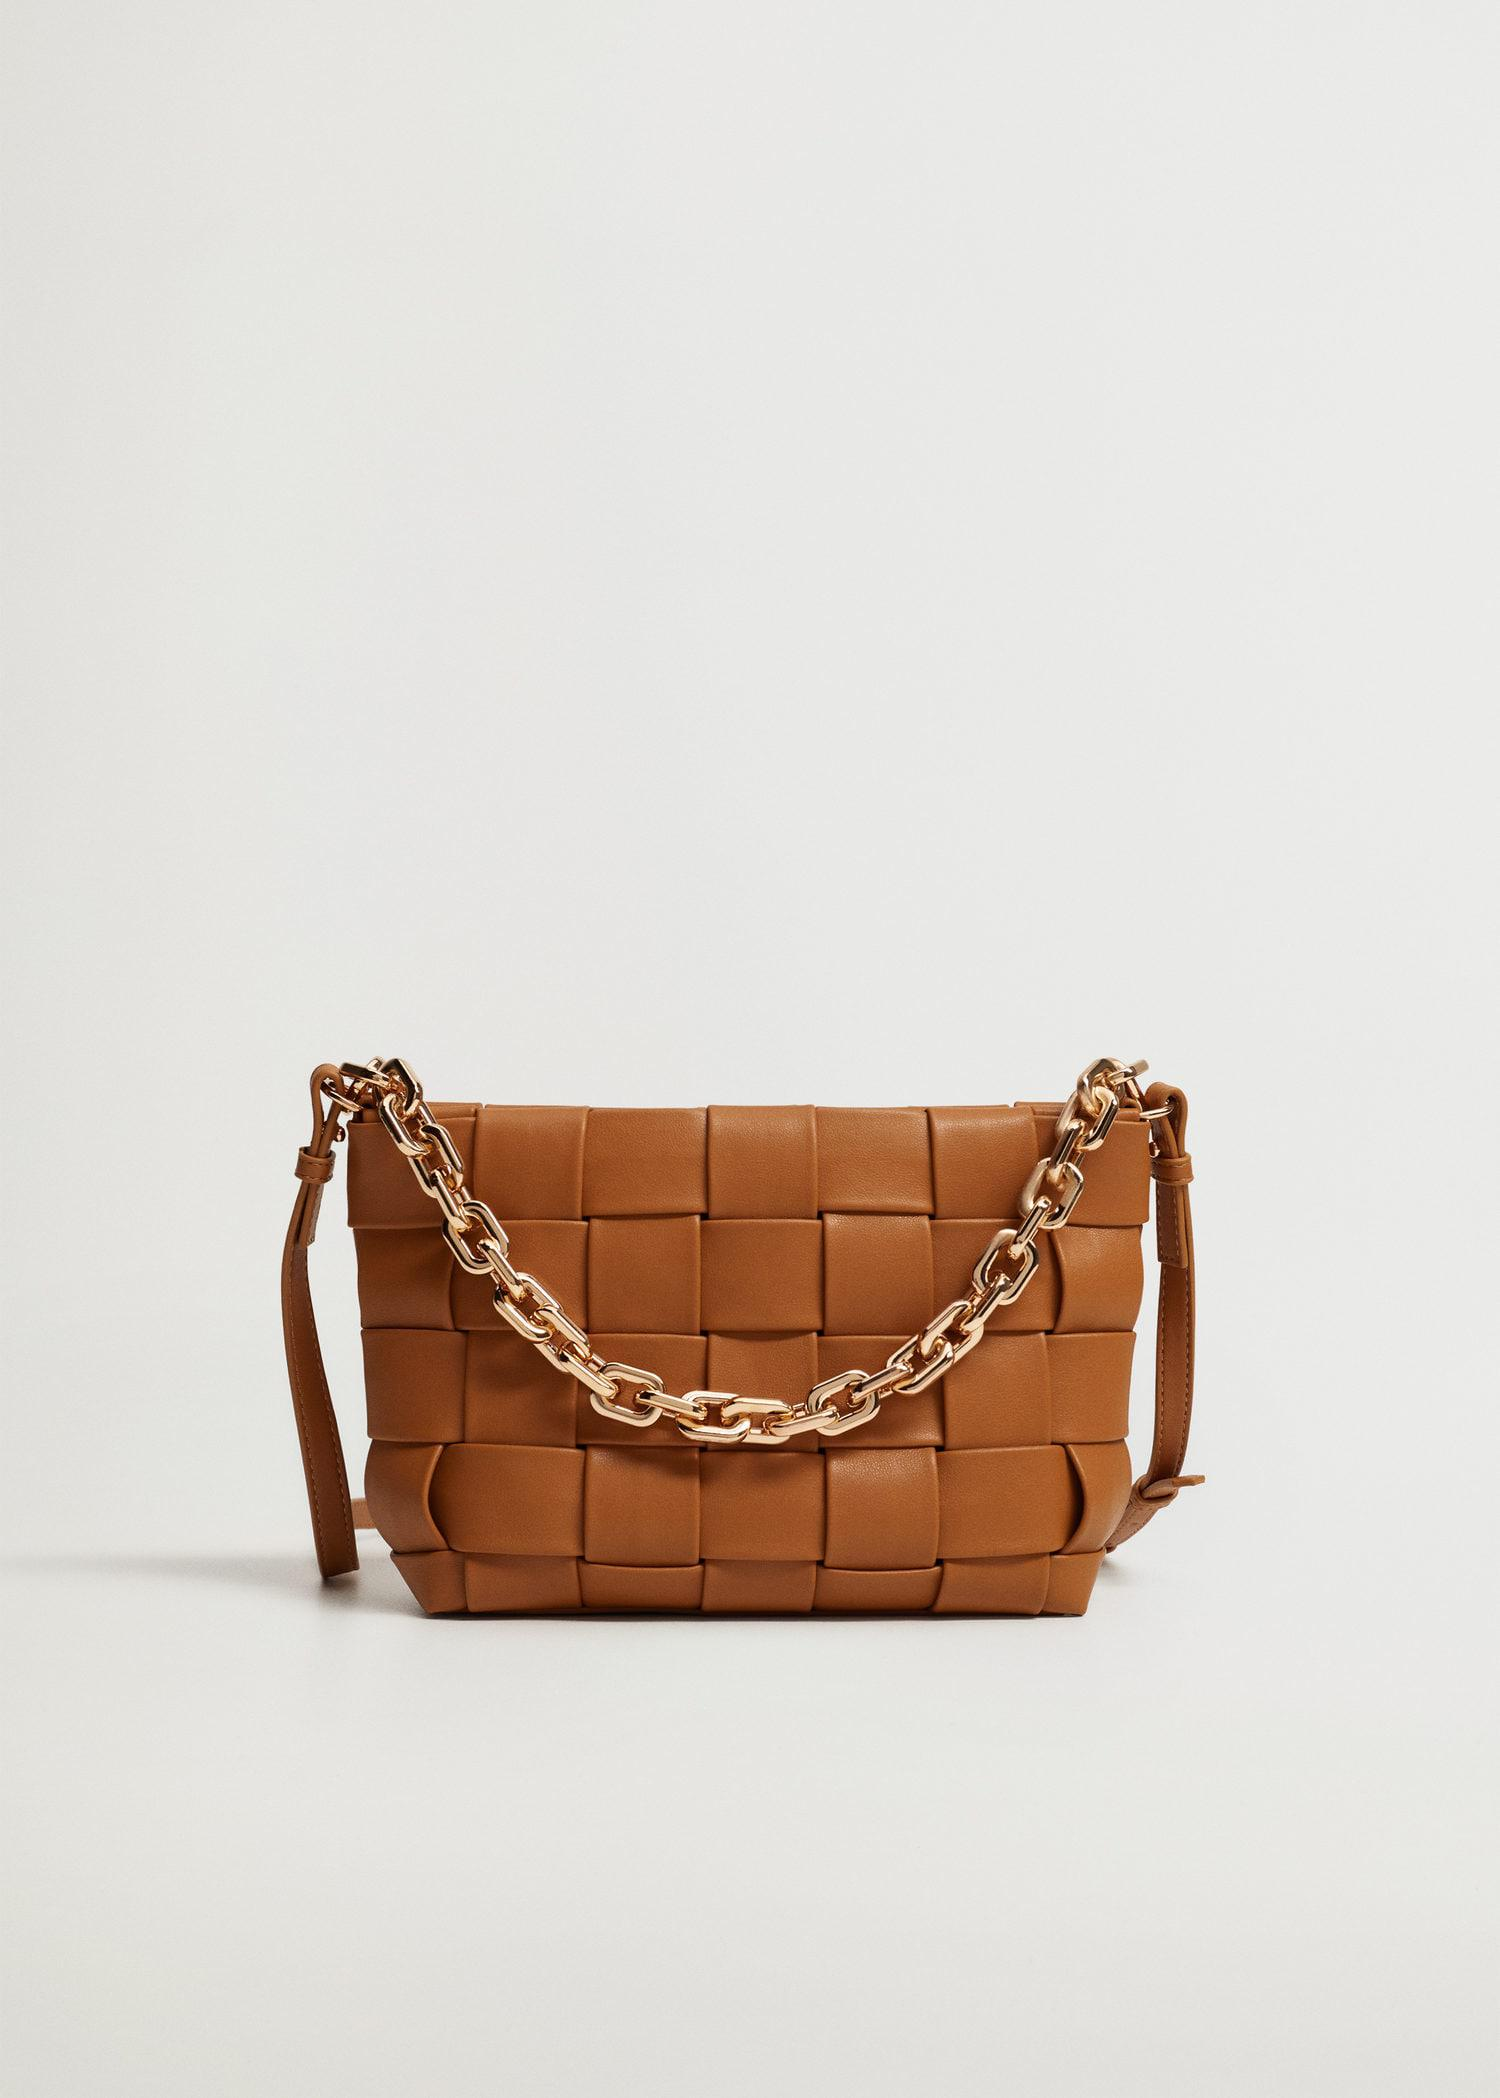 Braided bag with chain